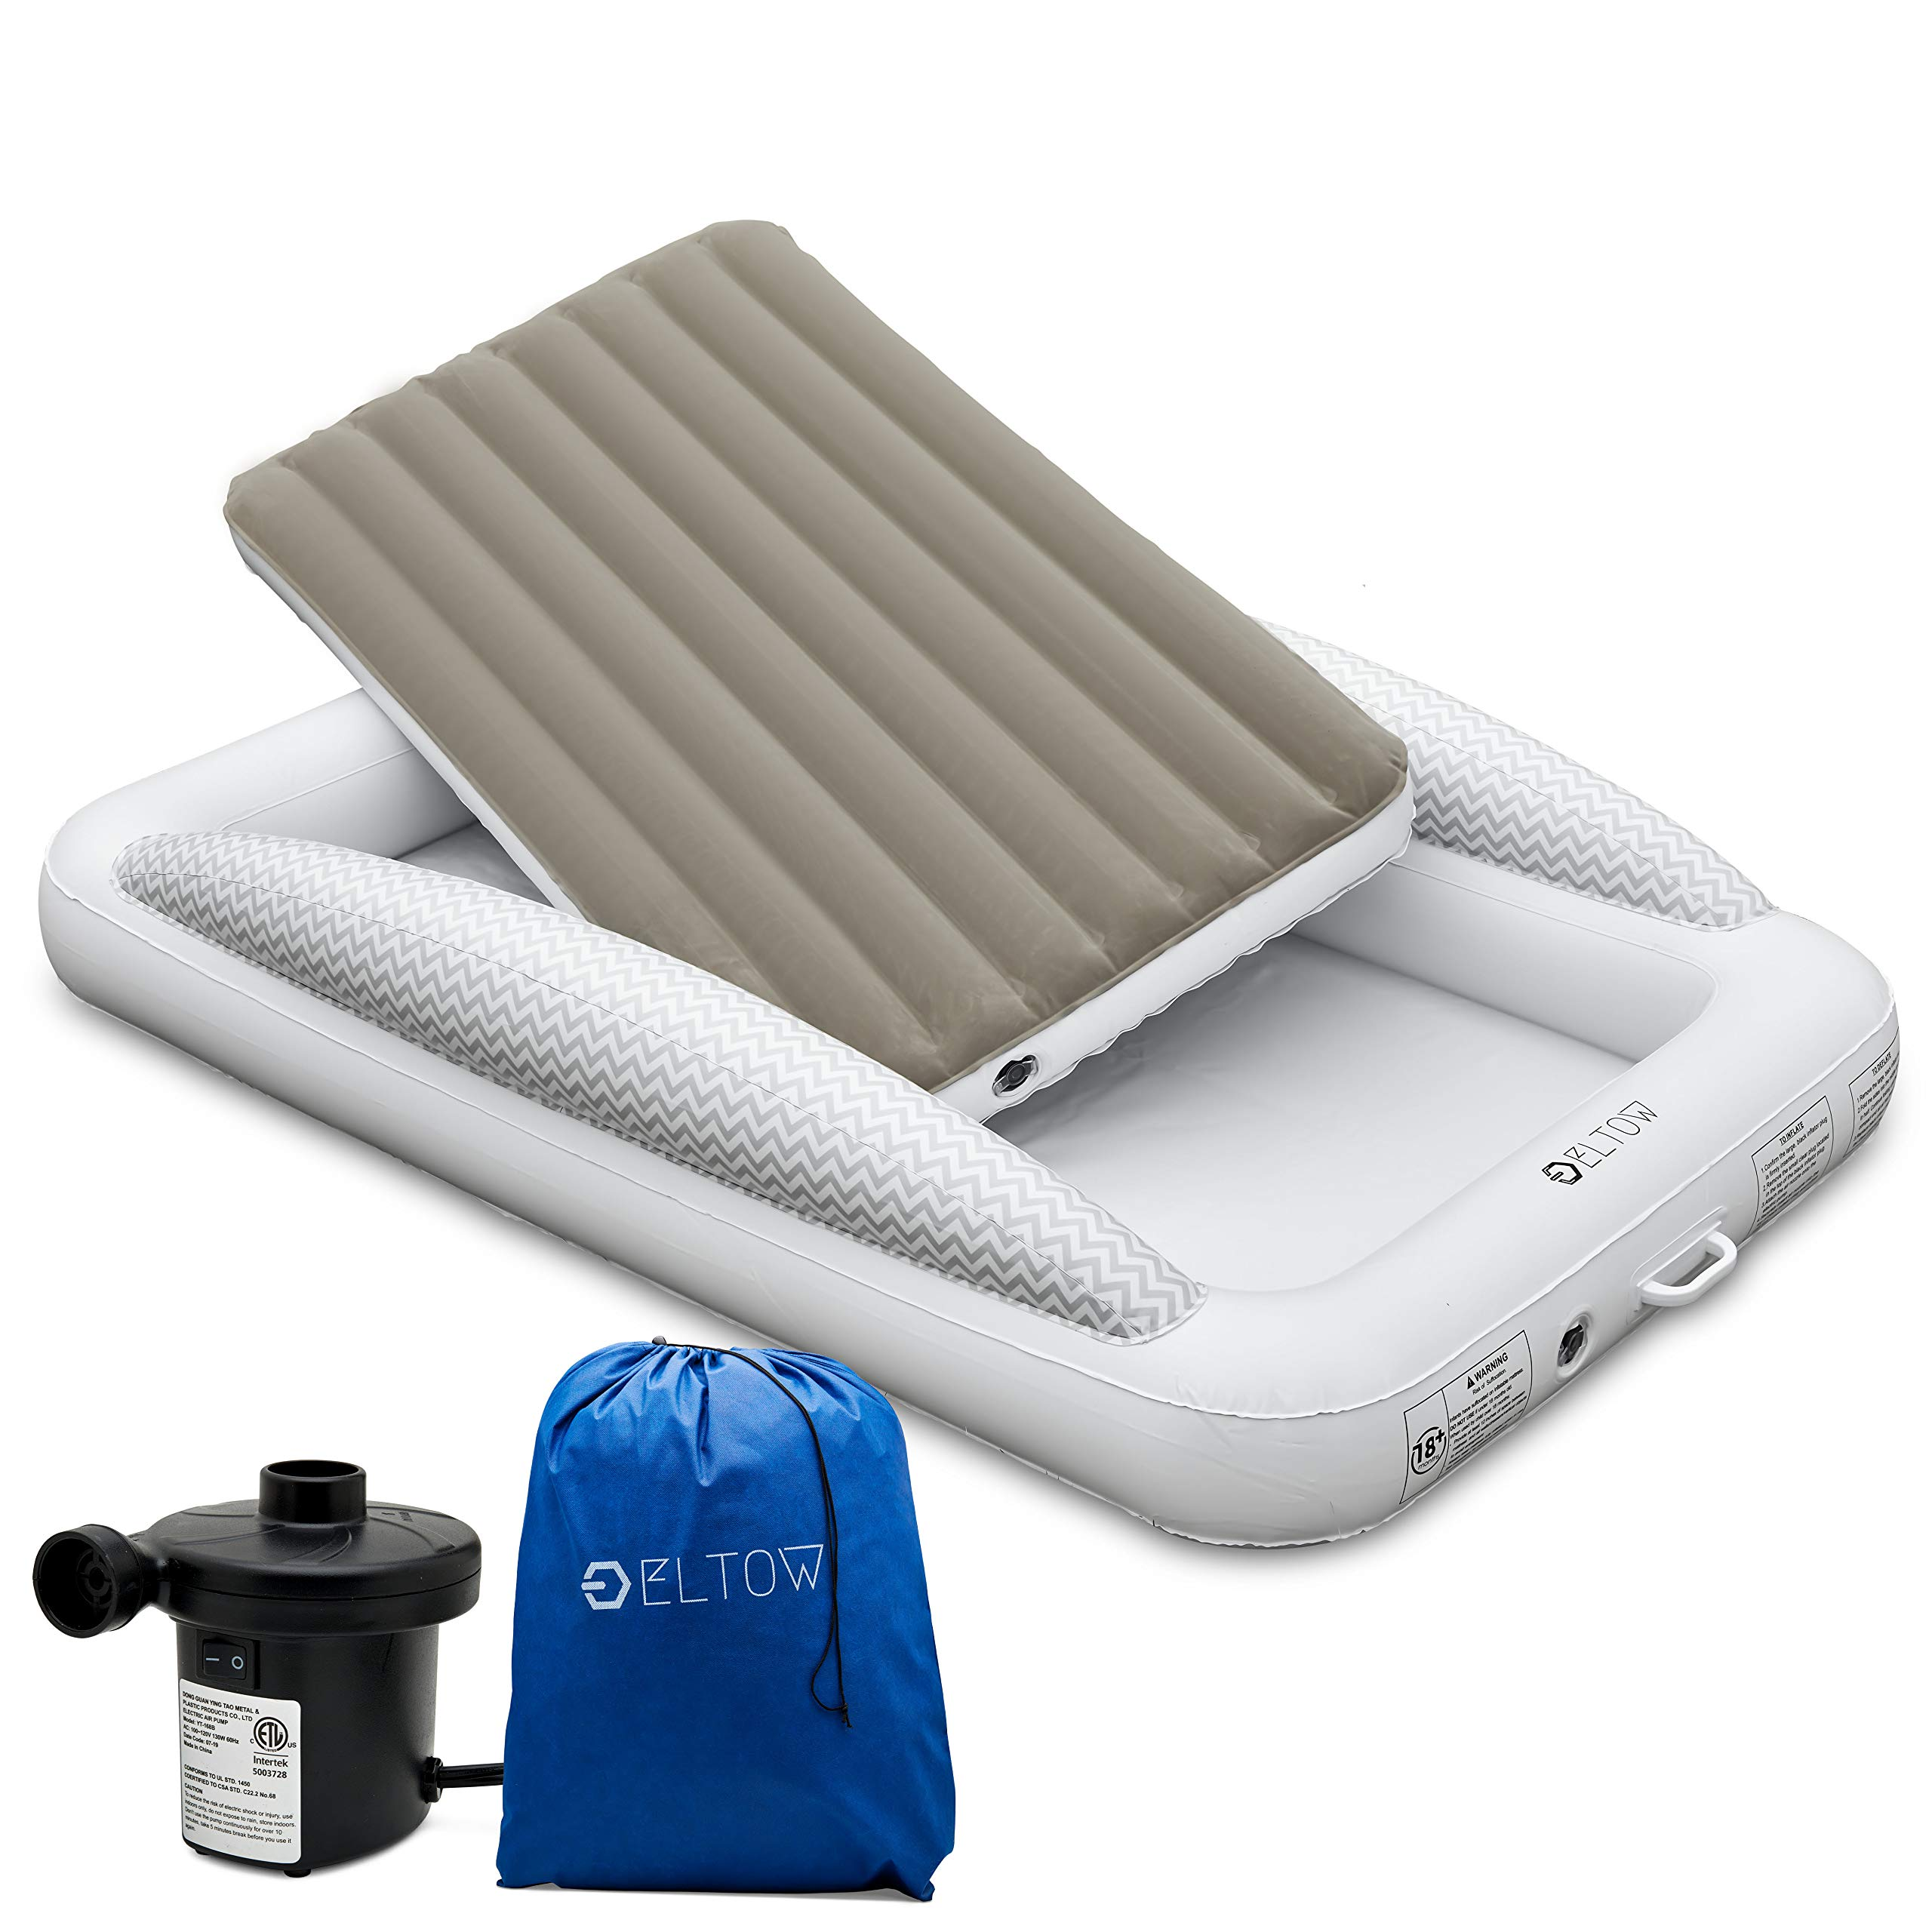 Eltow Inflatable Toddler Air Mattress Bed With Safety Bumper Portable Modern Travel Bed Cot For Toddlers Perfect For Travel Camping Removable Mattress High Speed Pump And Travel Bag Included